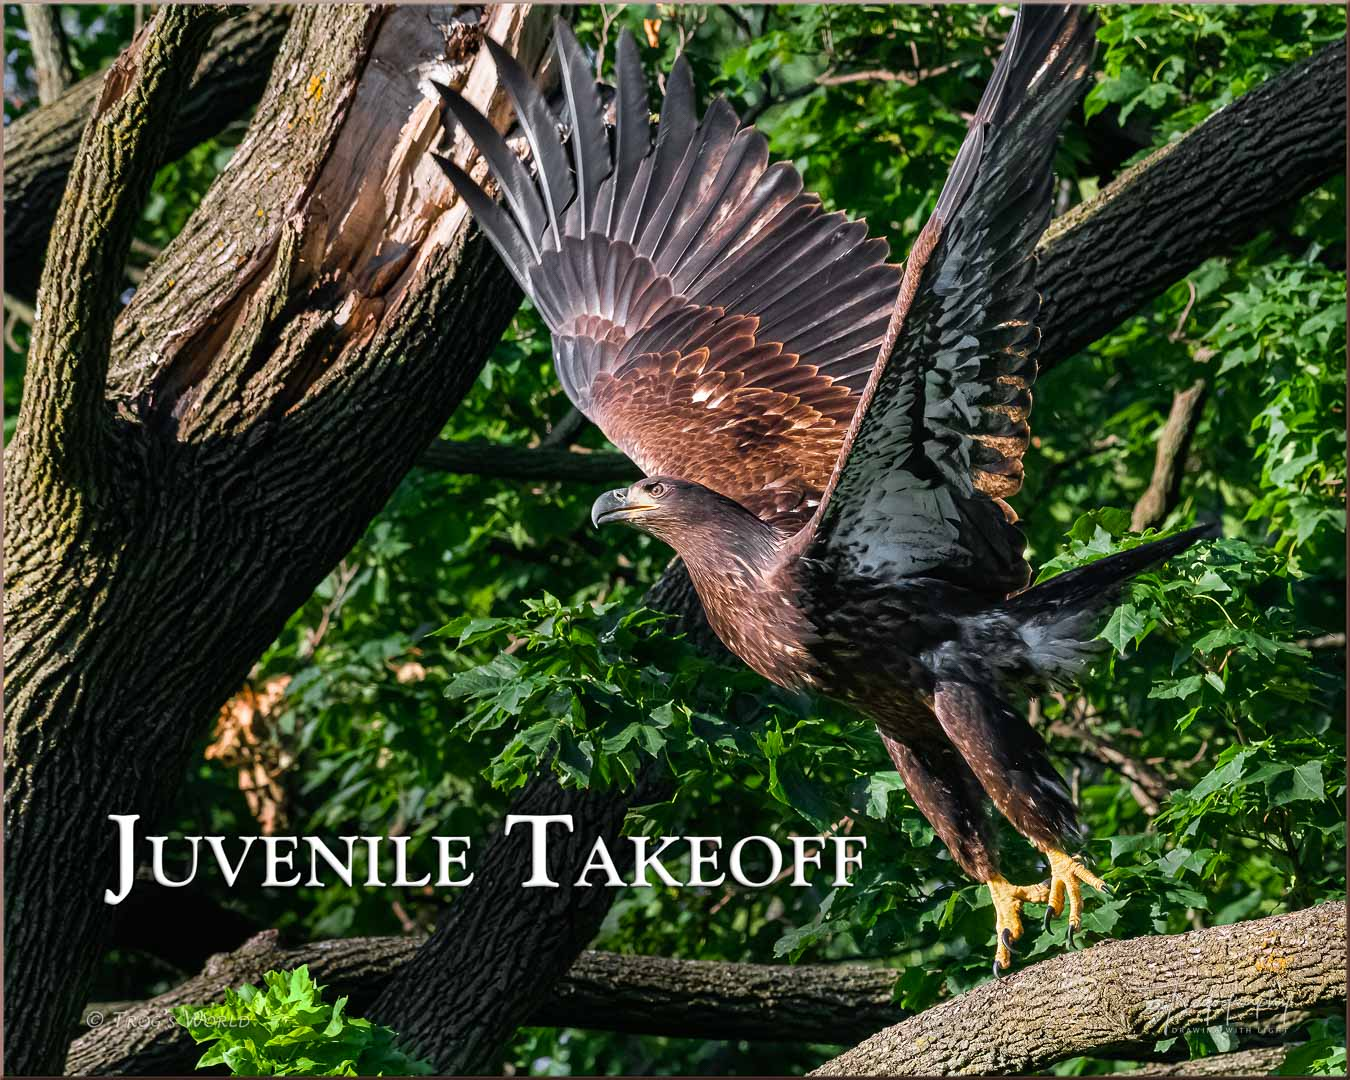 Juvenile Eagle taking off from a branch